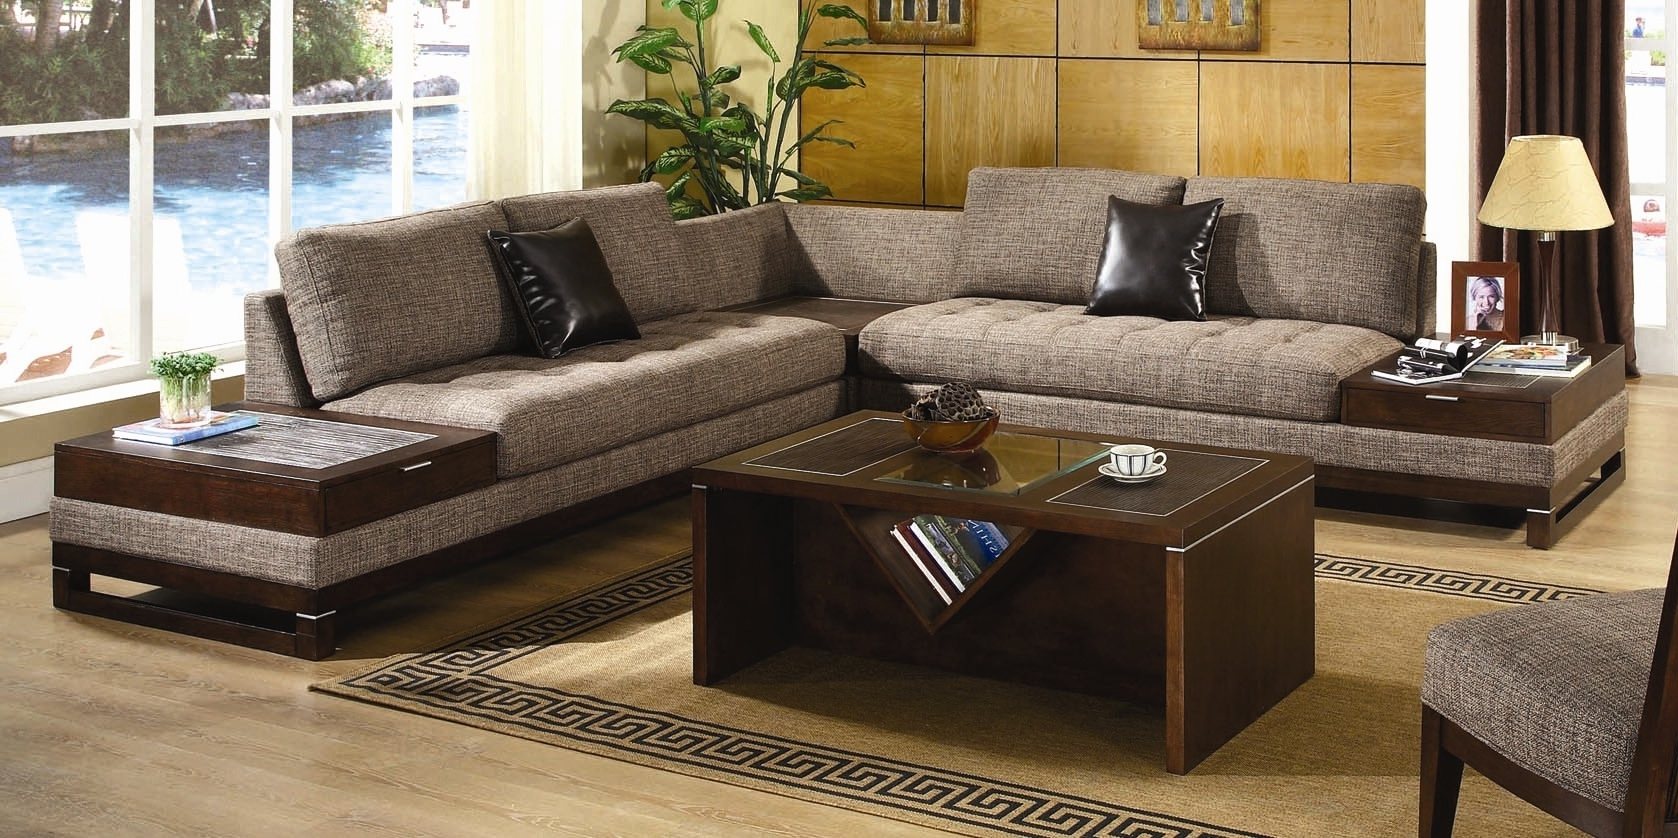 Most Recently Released Living Room Sofa And Chair Sets Intended For Furniture: Discount Living Room Furniture Inspiration Cheap (View 2 of 20)